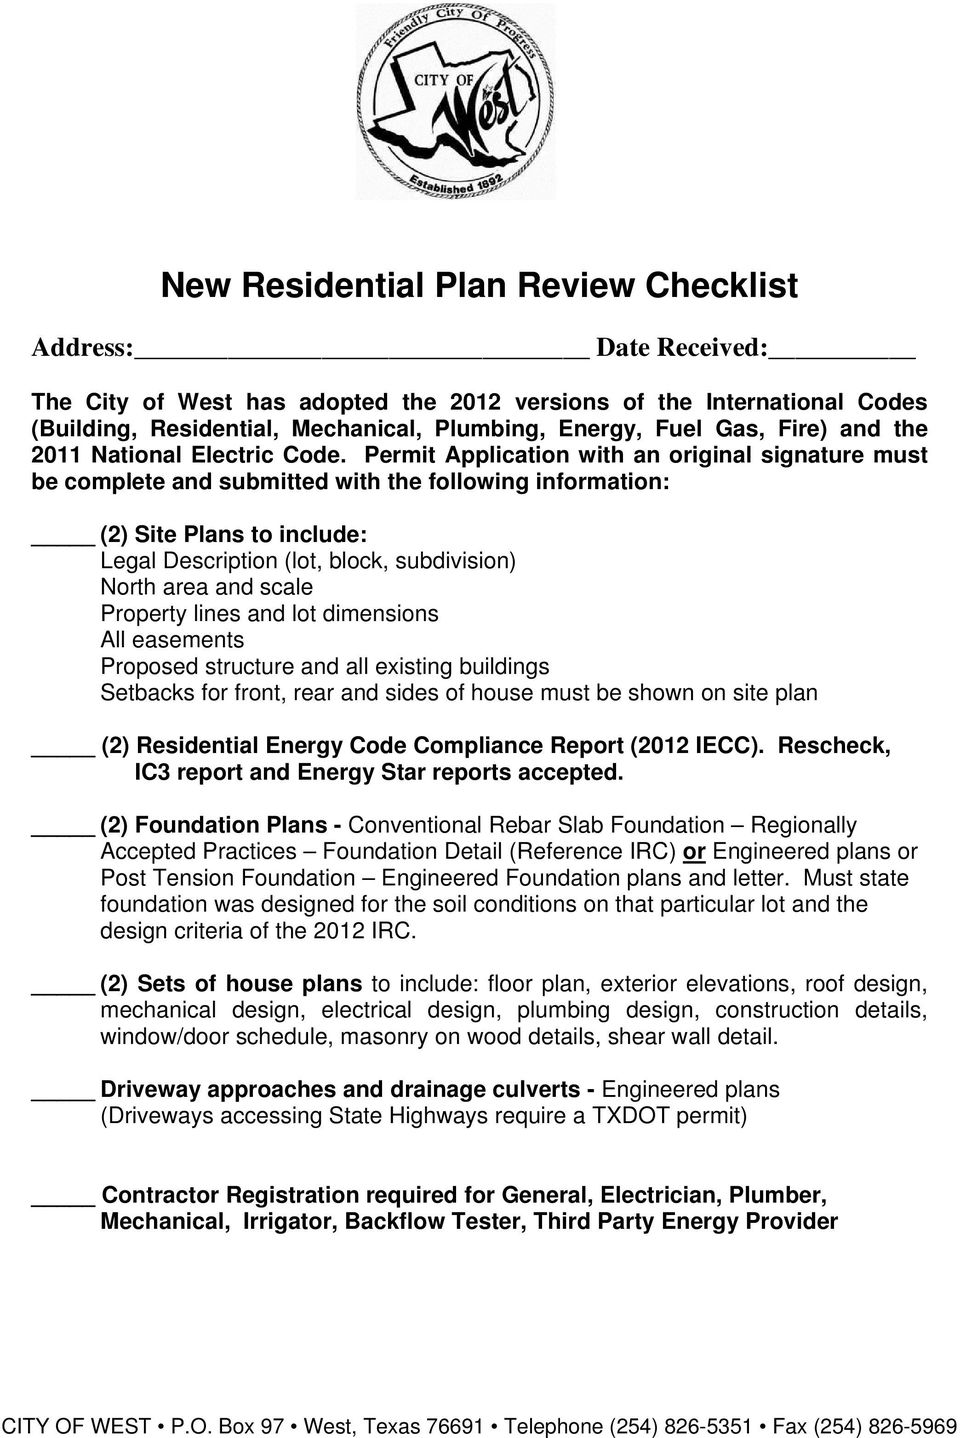 Permit Application with an original signature must be complete and submitted with the following information: (2) Site Plans to include: Legal Description (lot, block, subdivision) North area and